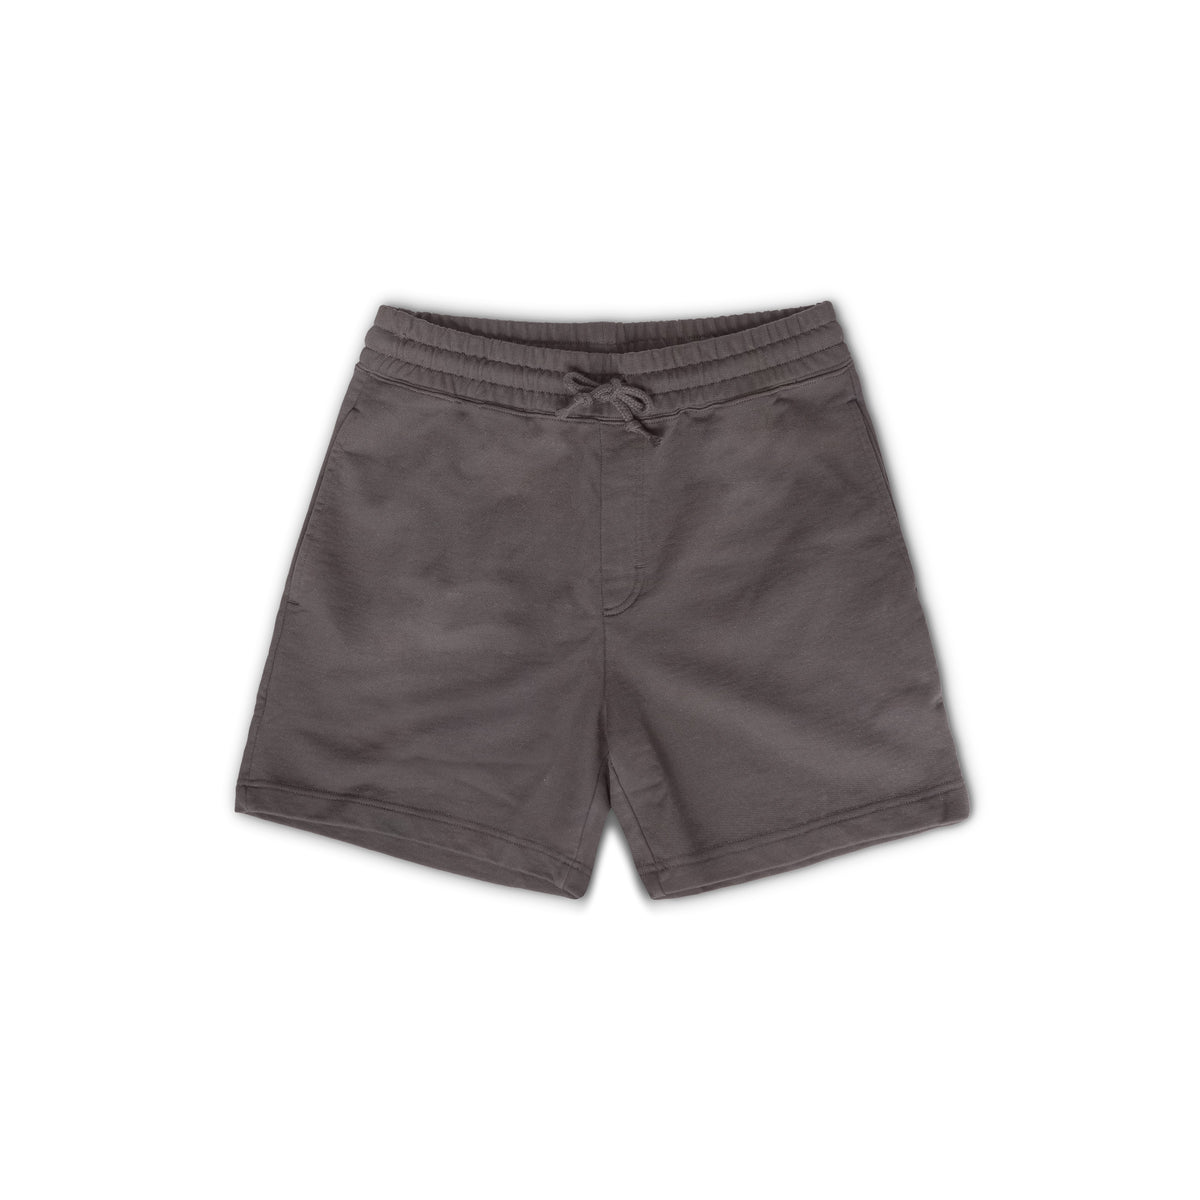 Sweatpant Short Charcoal - Unrecorded